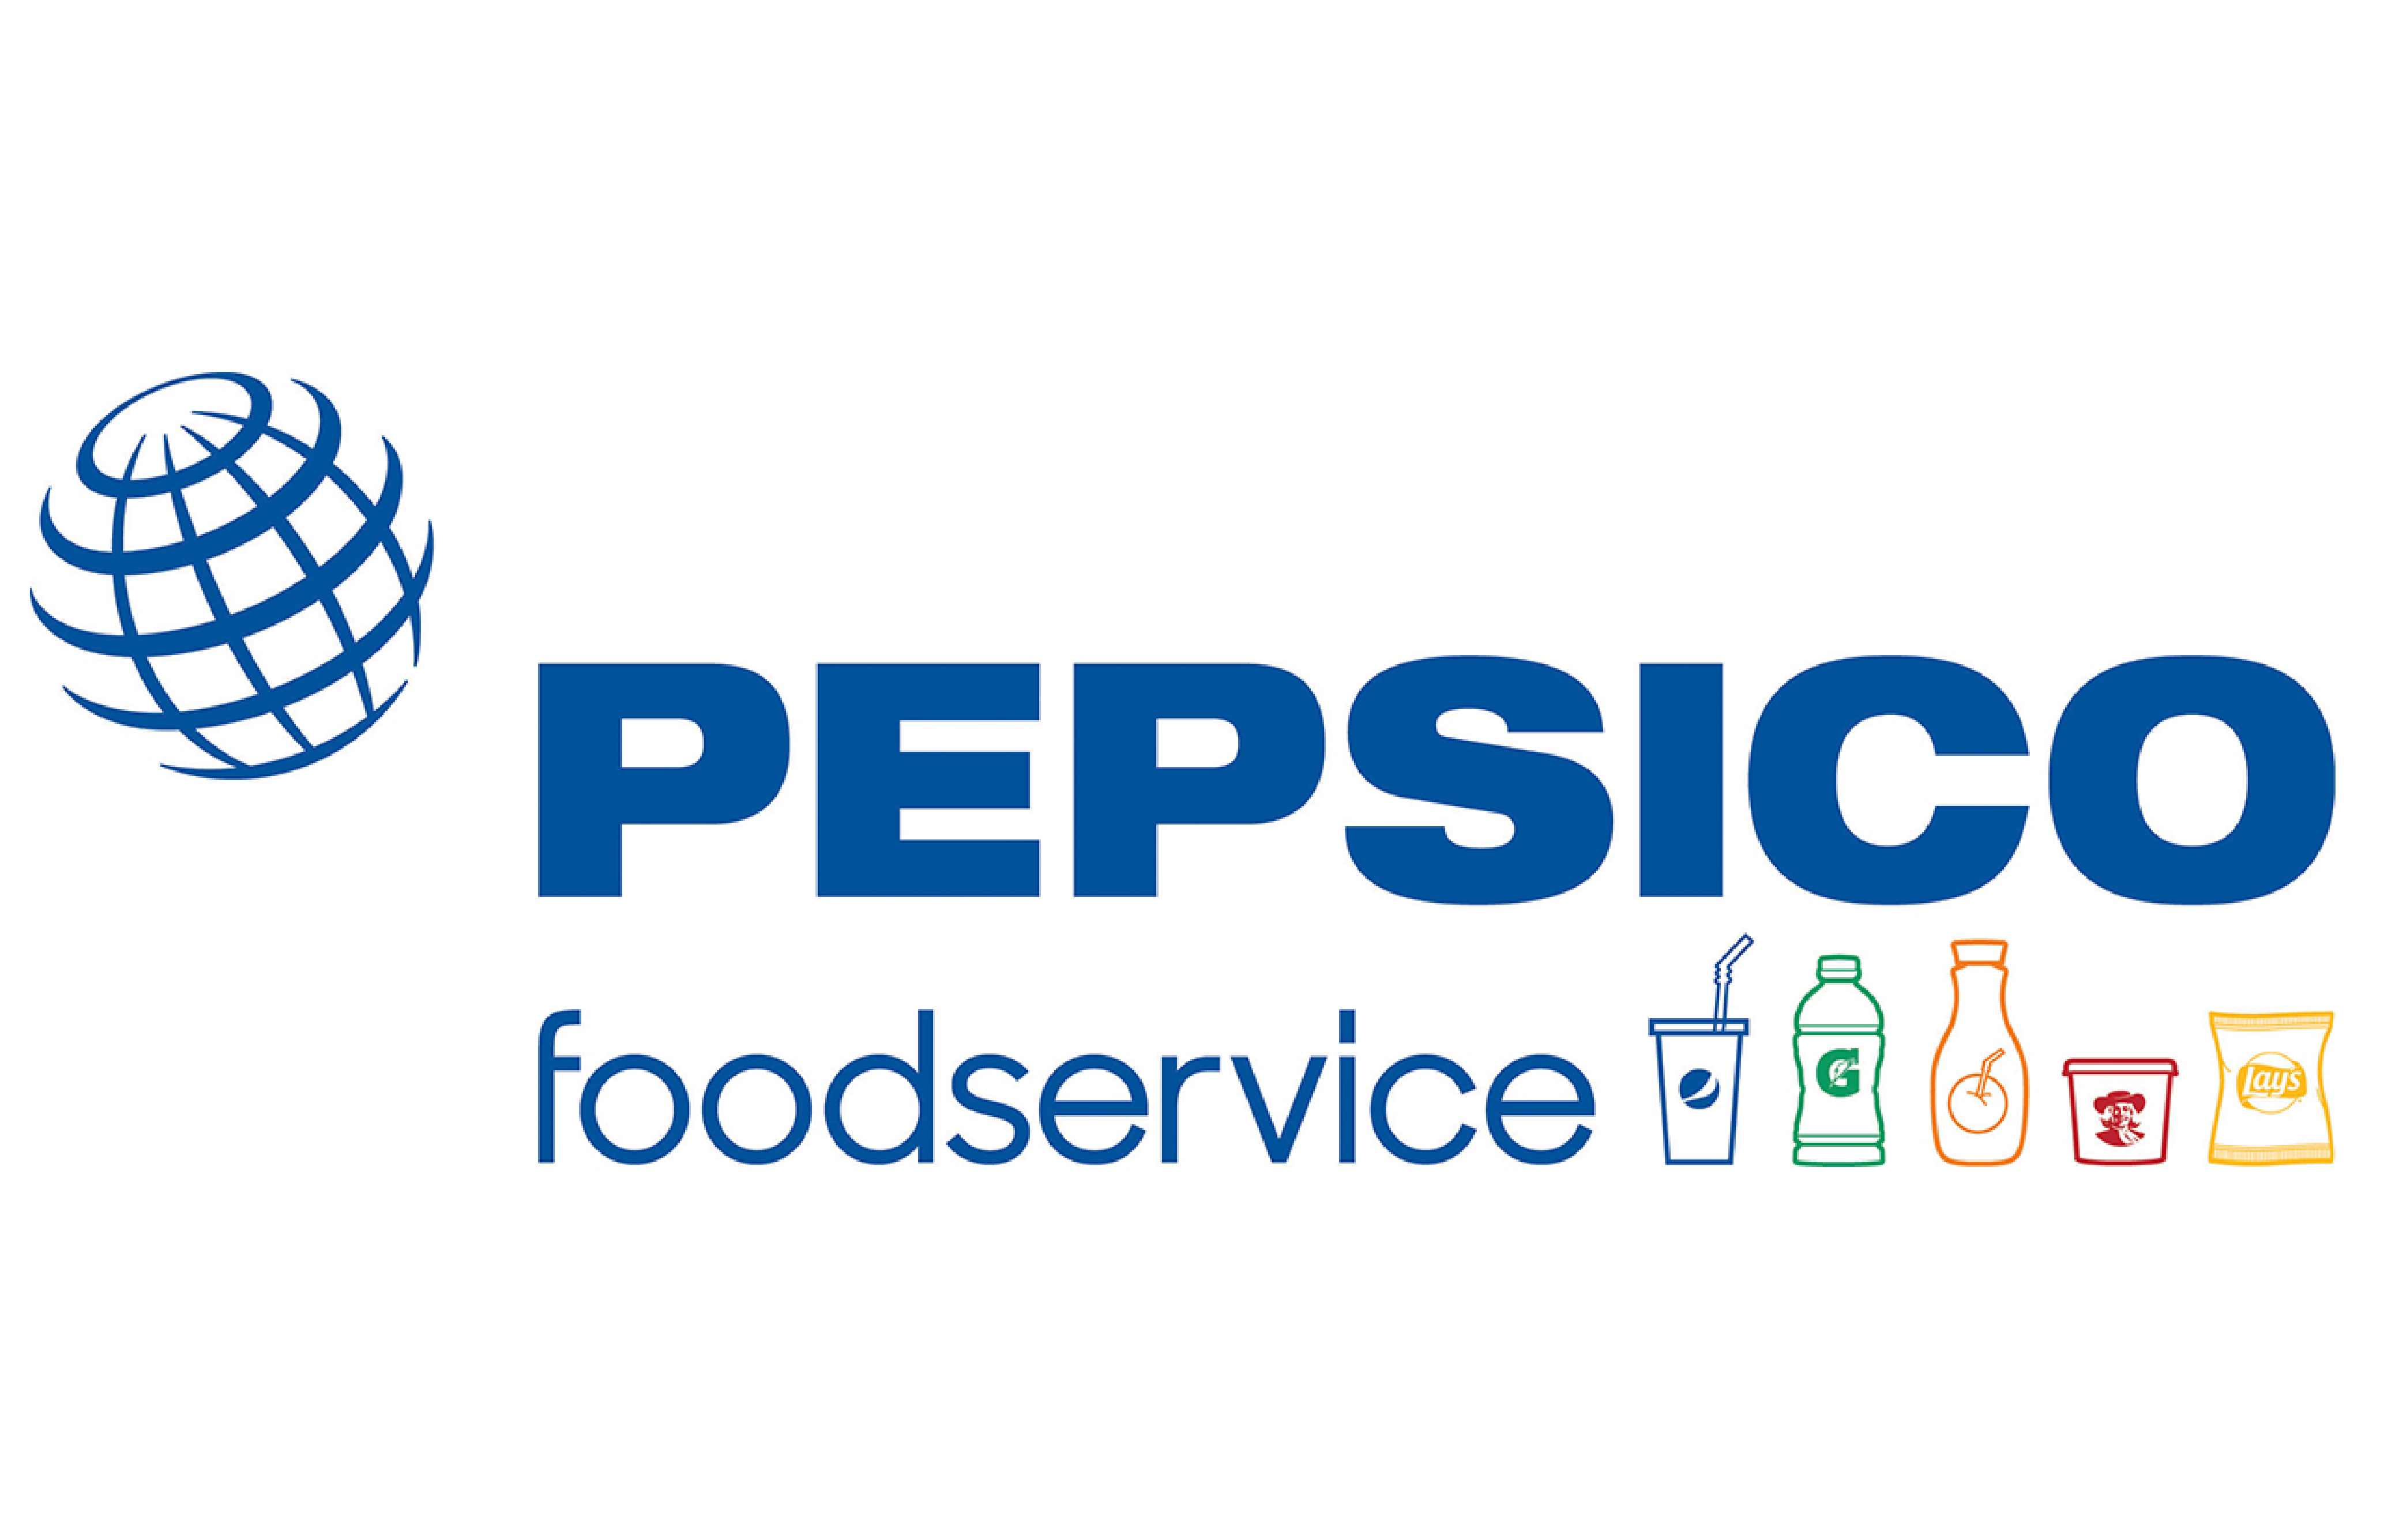 PointofSale.com PepsiCo Foodservice Unveils New Digital Lab to Help Restaurants Thrive In The Evolving Digital Marketplace